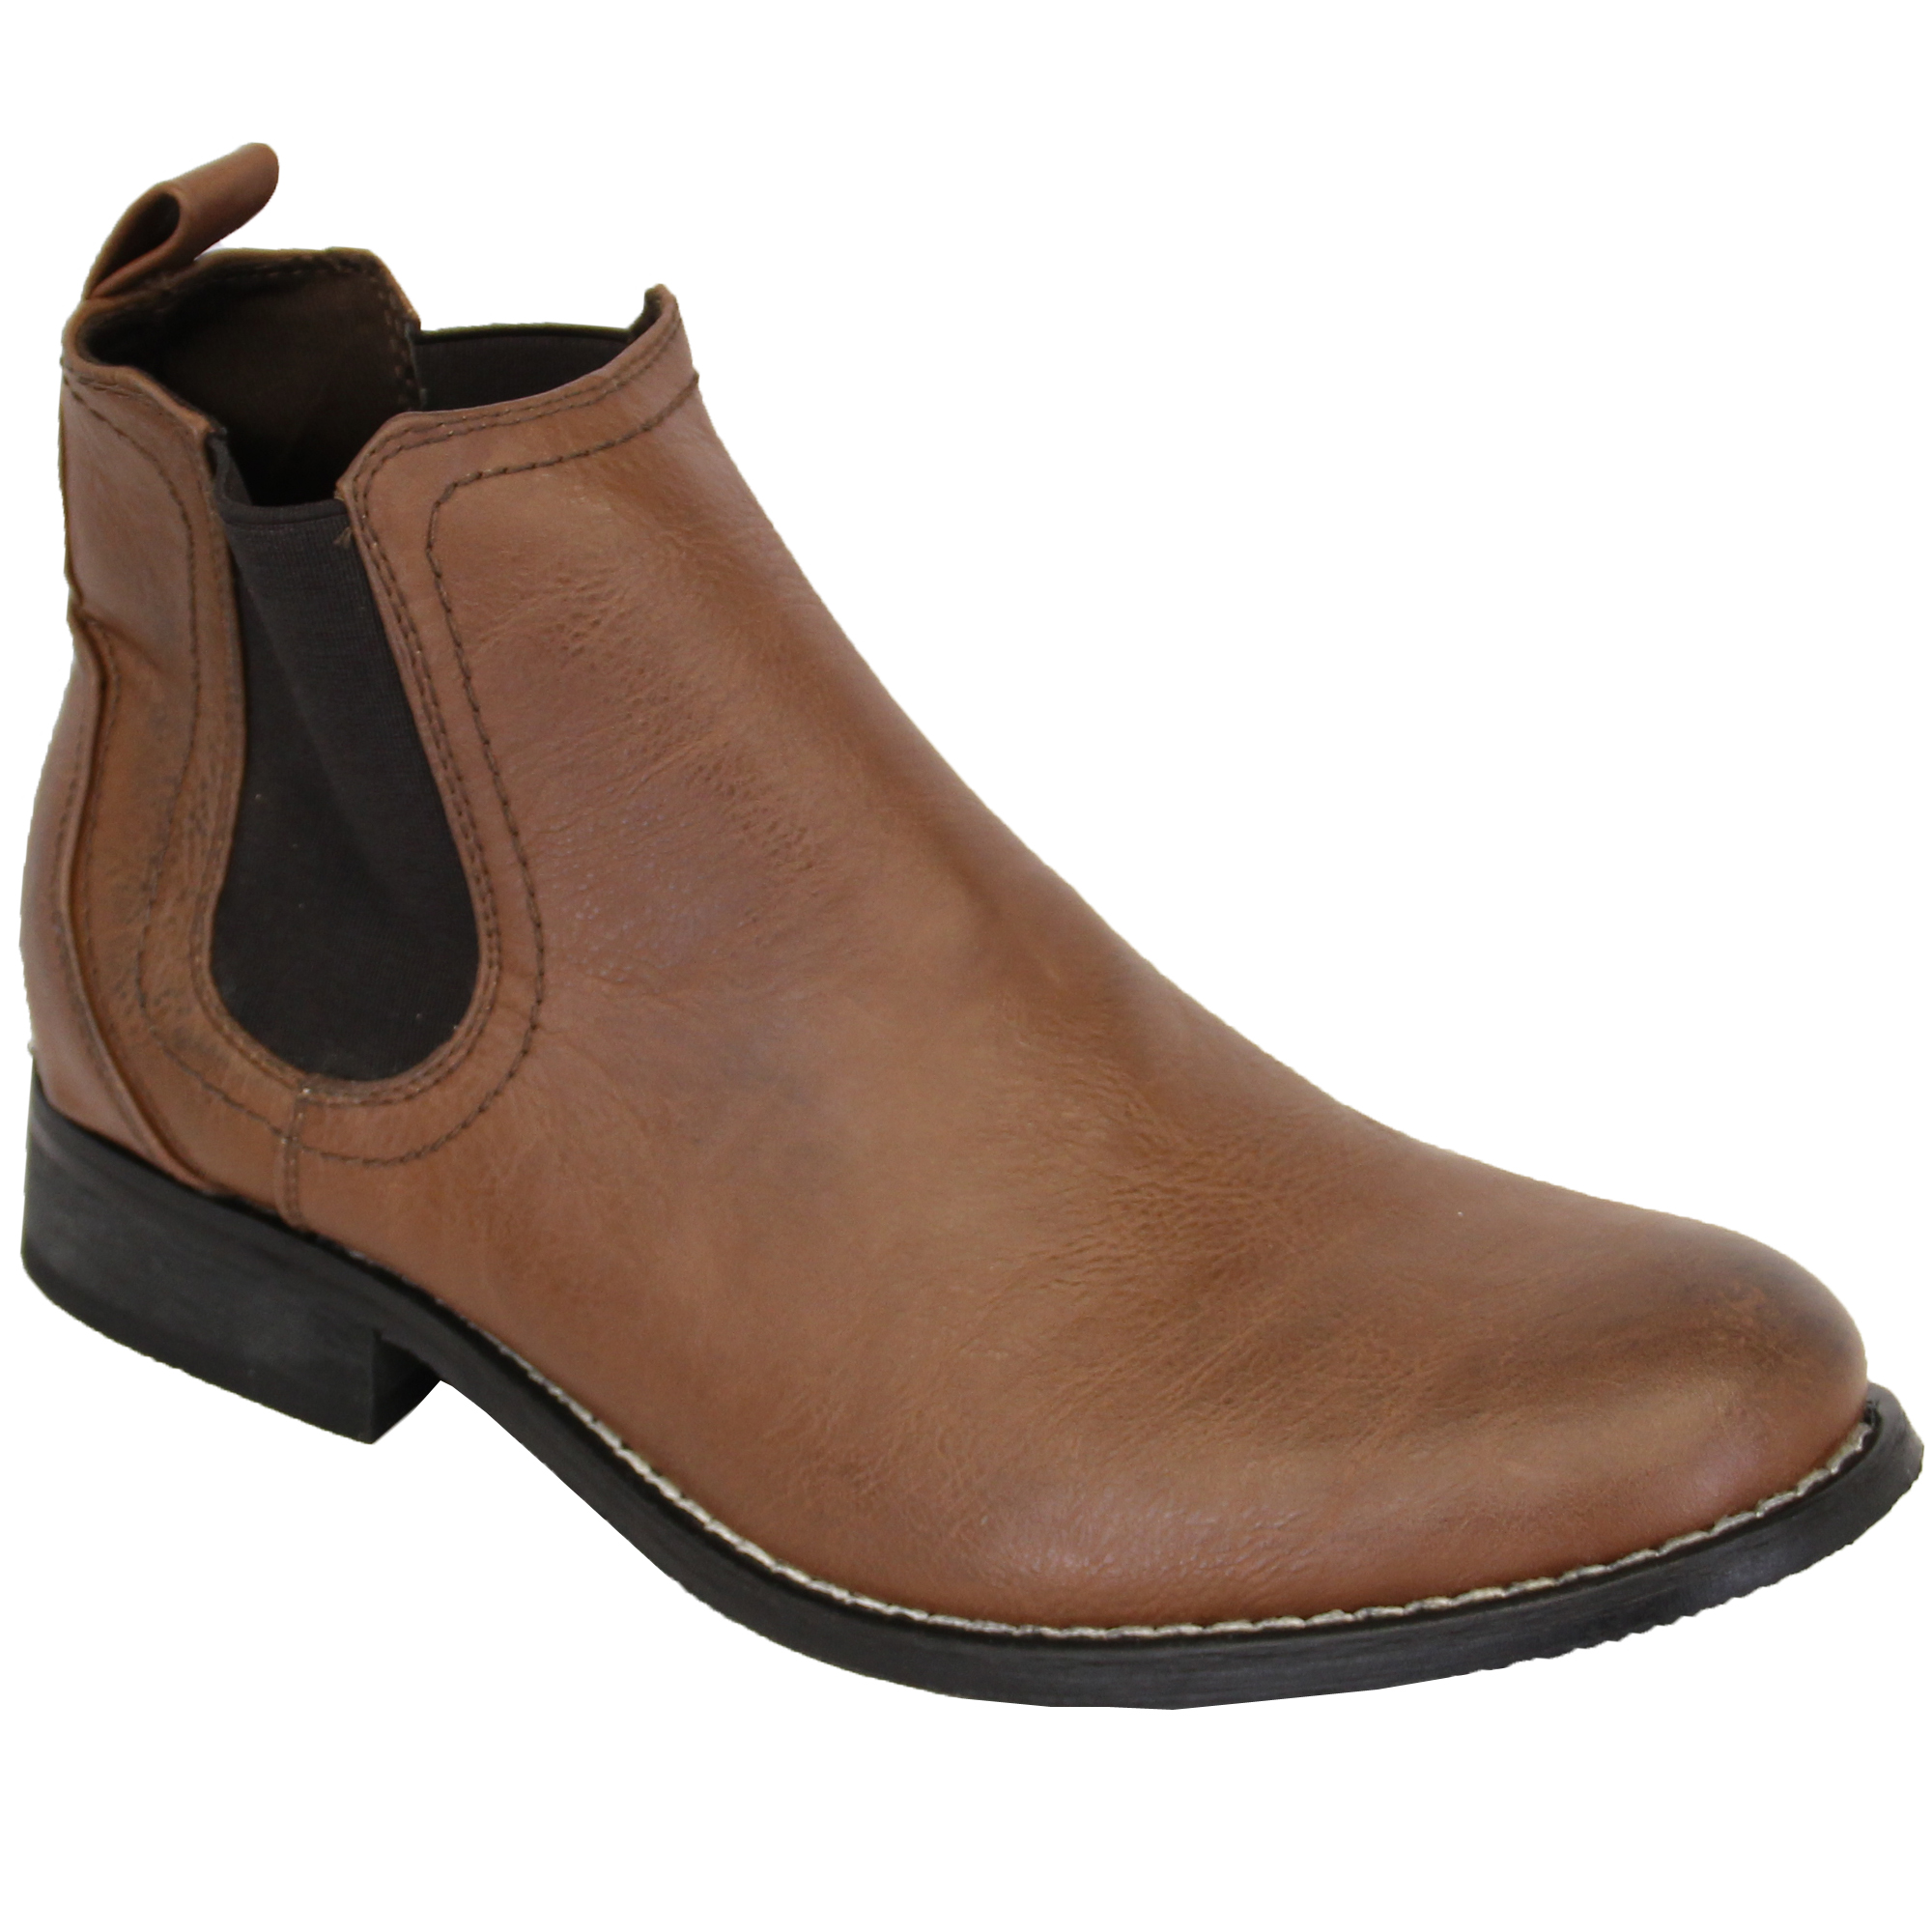 mens chelsea boots dealer high ankle leather look shoes